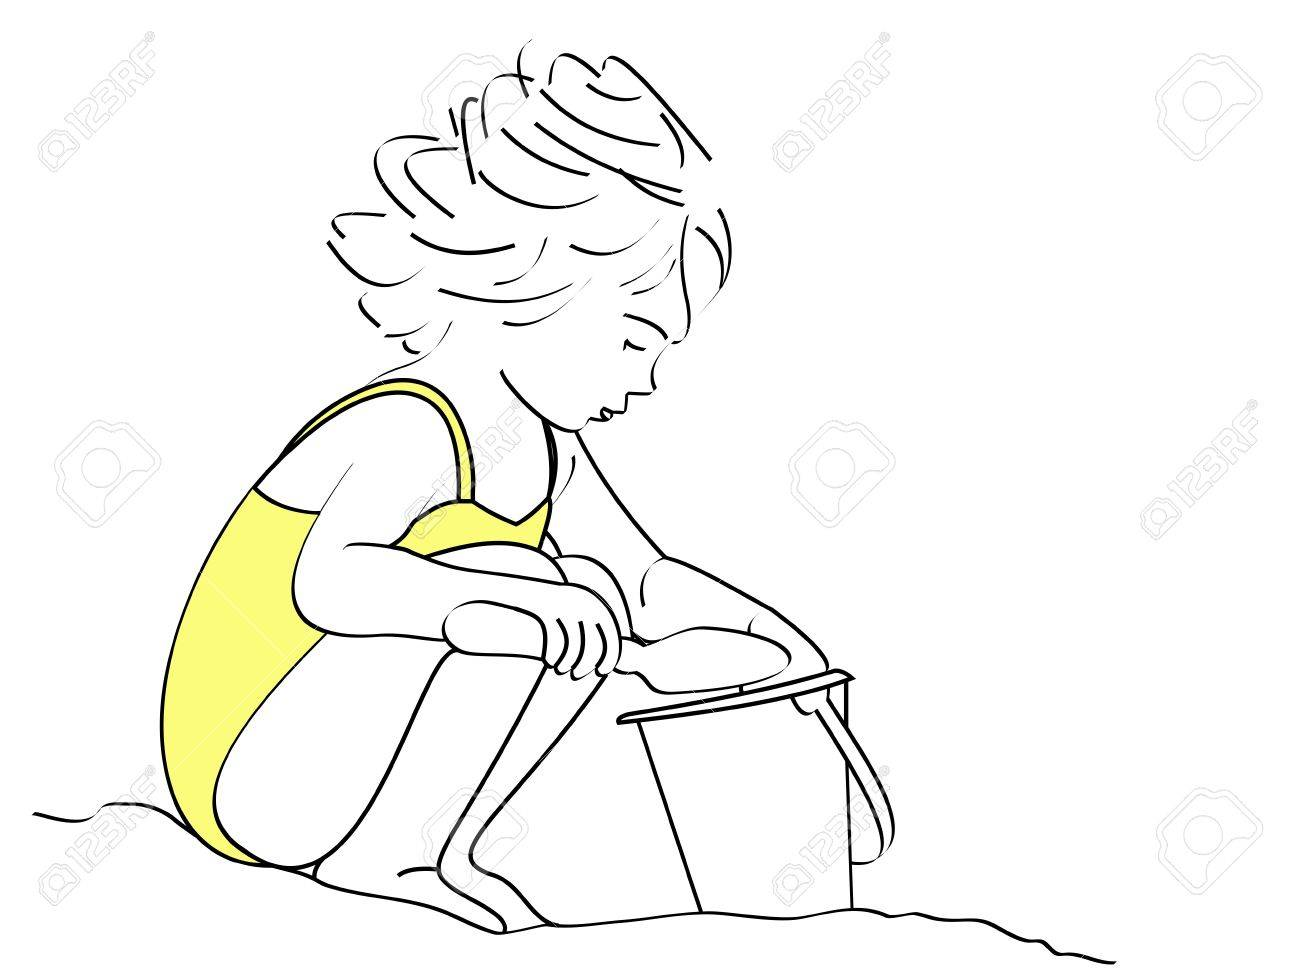 1300x974 A Line Drawing Of A Small Girl Shoveling Sand In Her Bucket